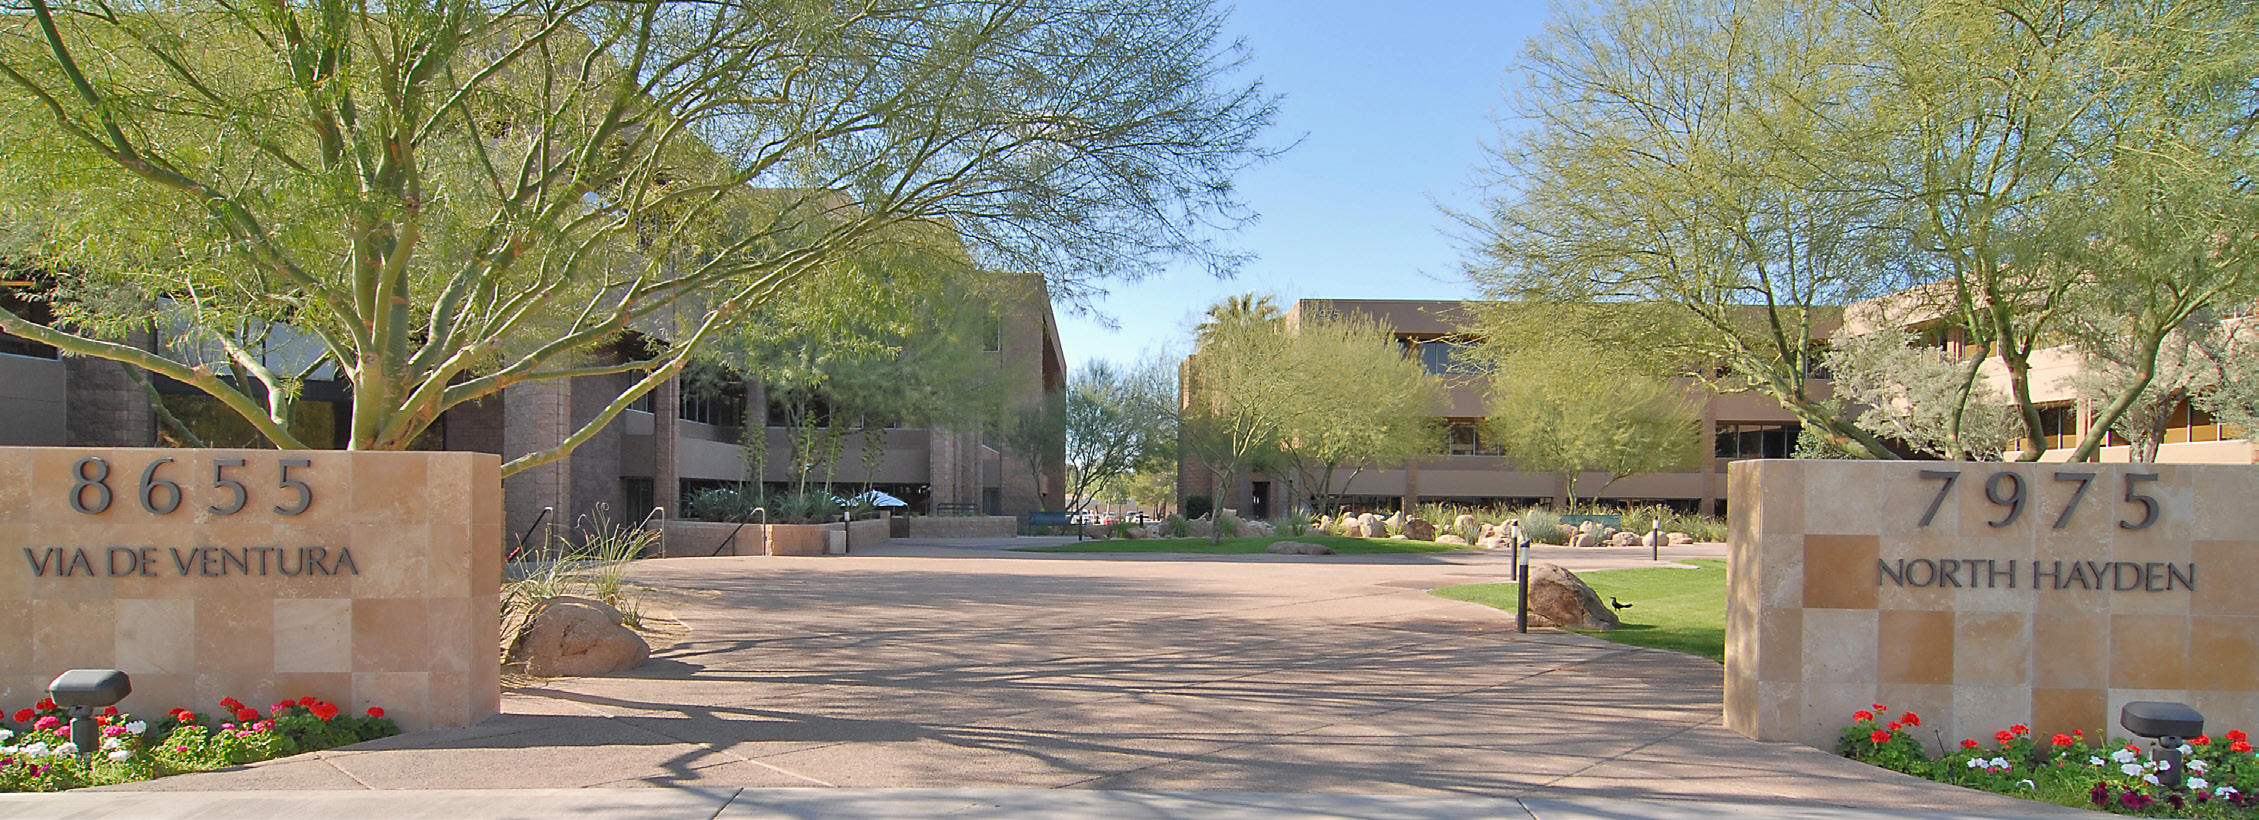 office property scottsdale